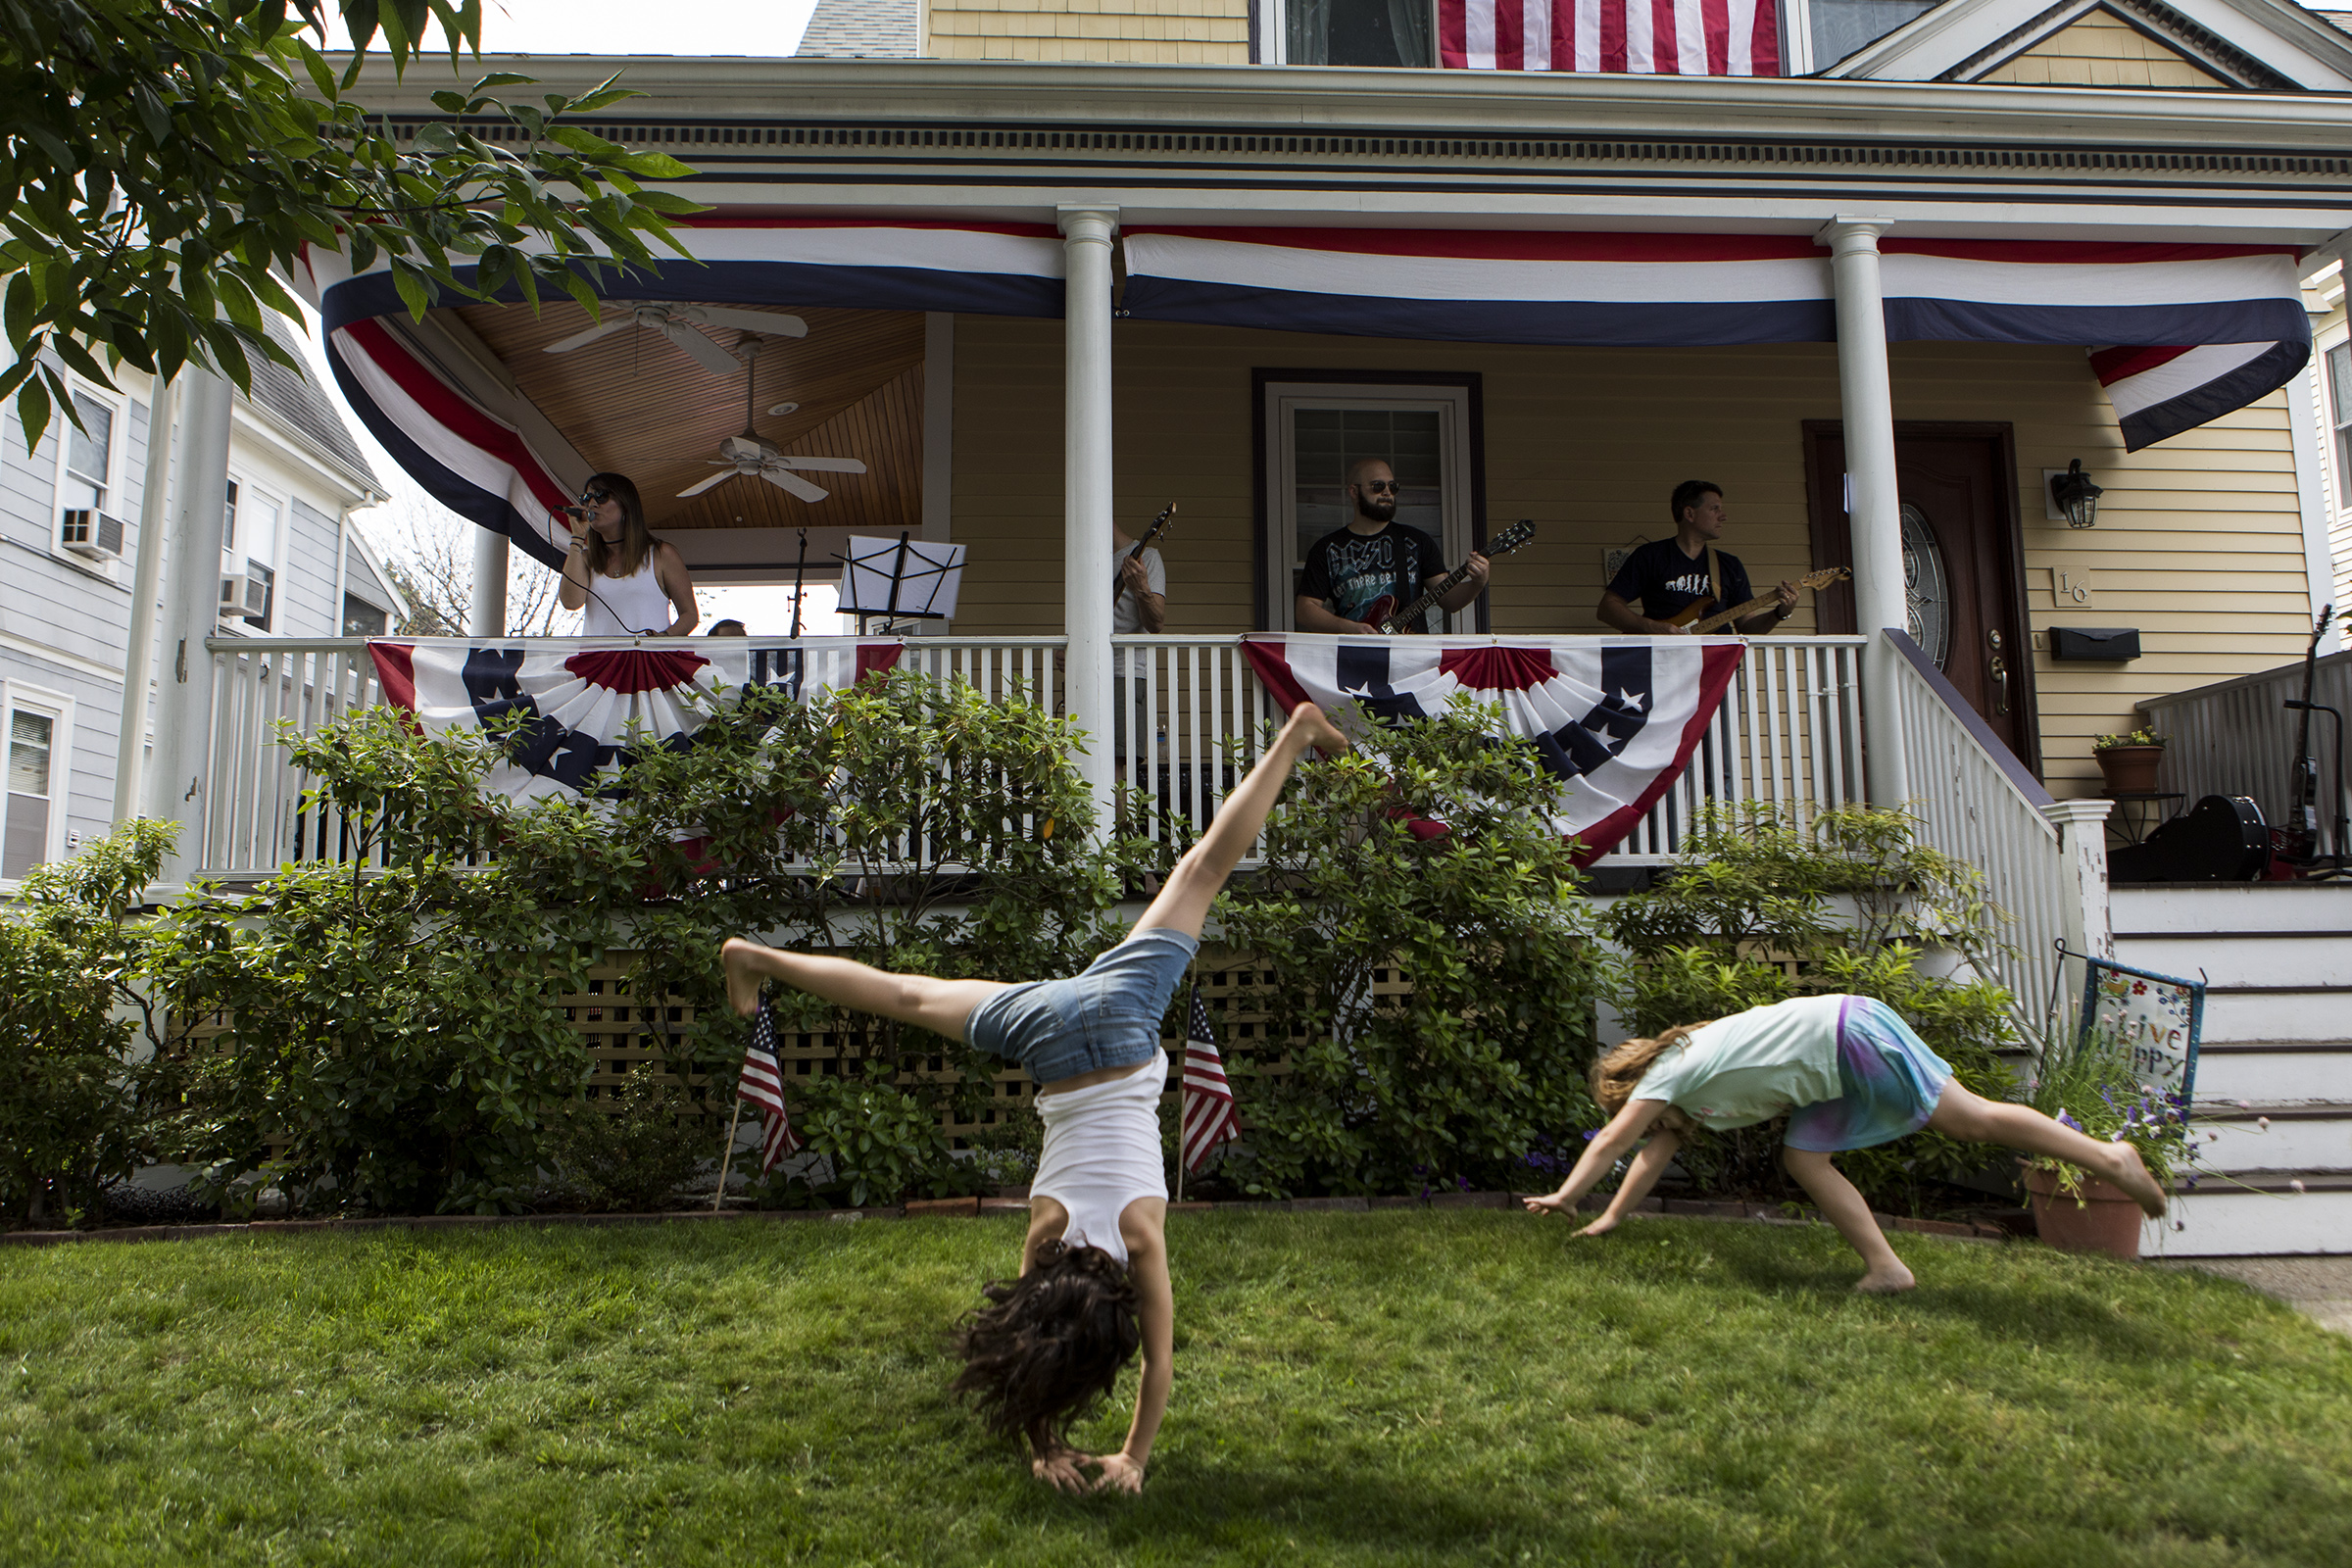 Ruby Quinn, 8, of Medford, left, and Julia McDermott, 7, of Arlington, cartwheel while Second Helping of Slop performs on Cleveland Street during Arlington Porchfest on June 09, 2018.